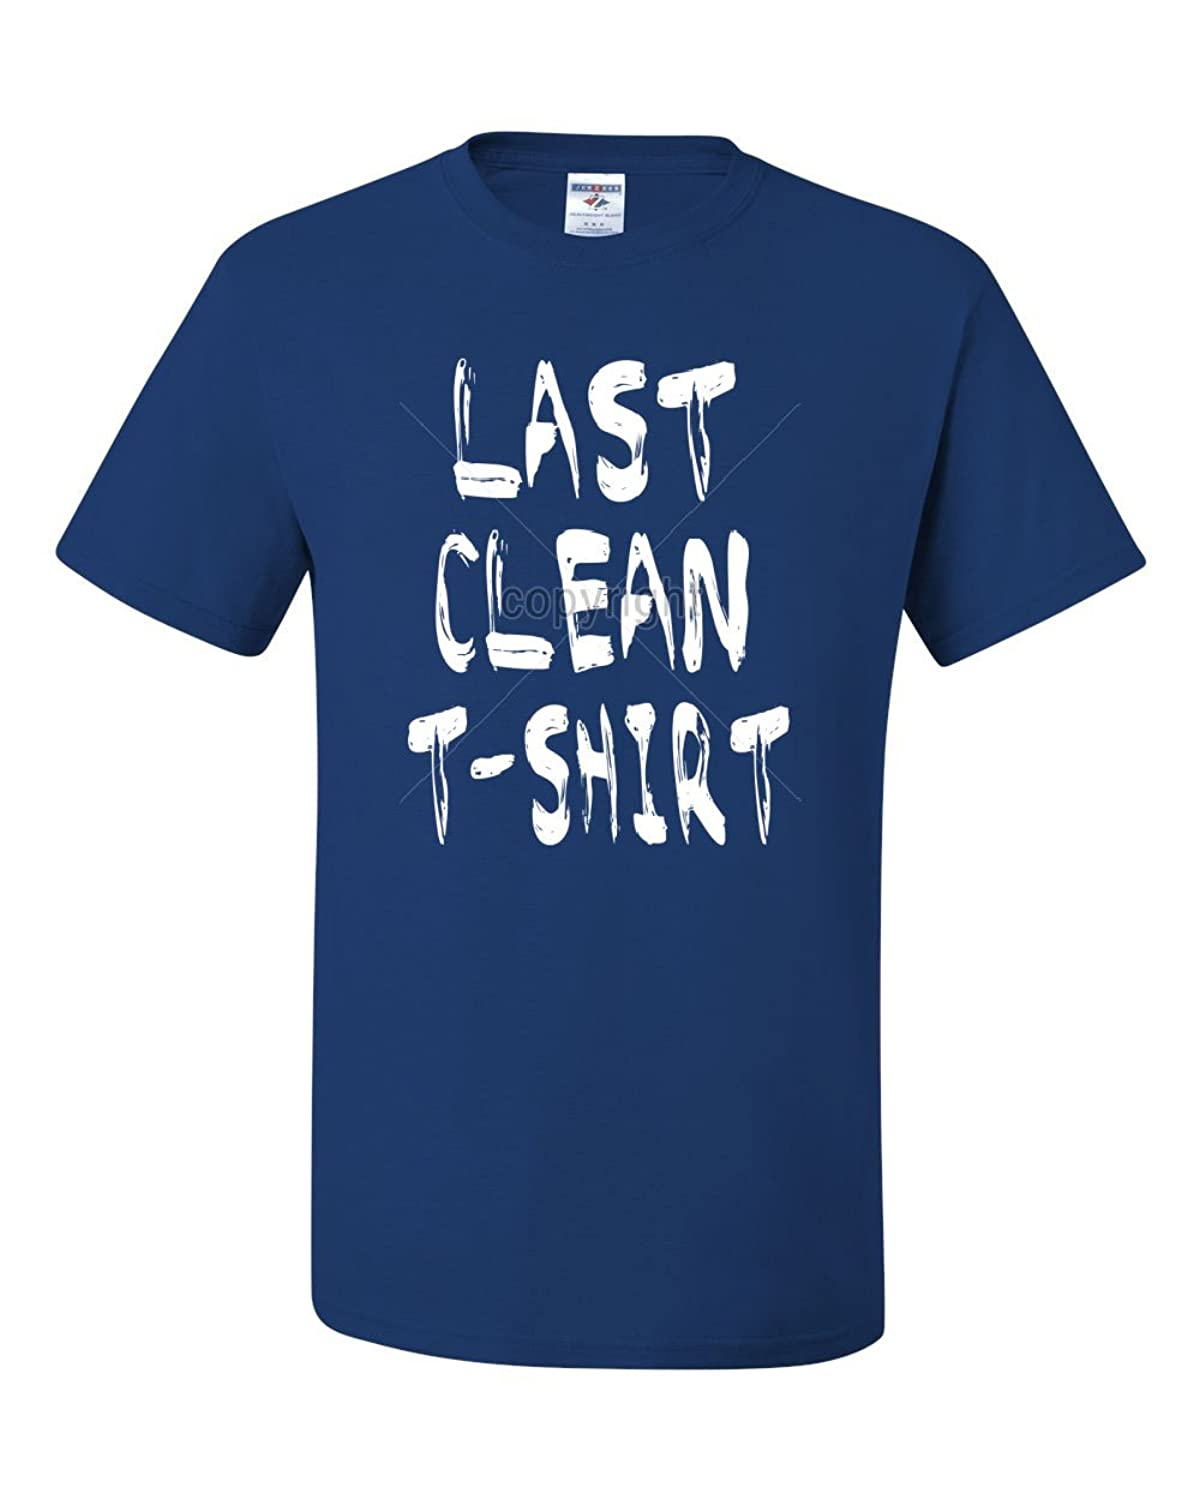 Last Clean T-Shirt College Humor Drinking Funny Tee Shirt